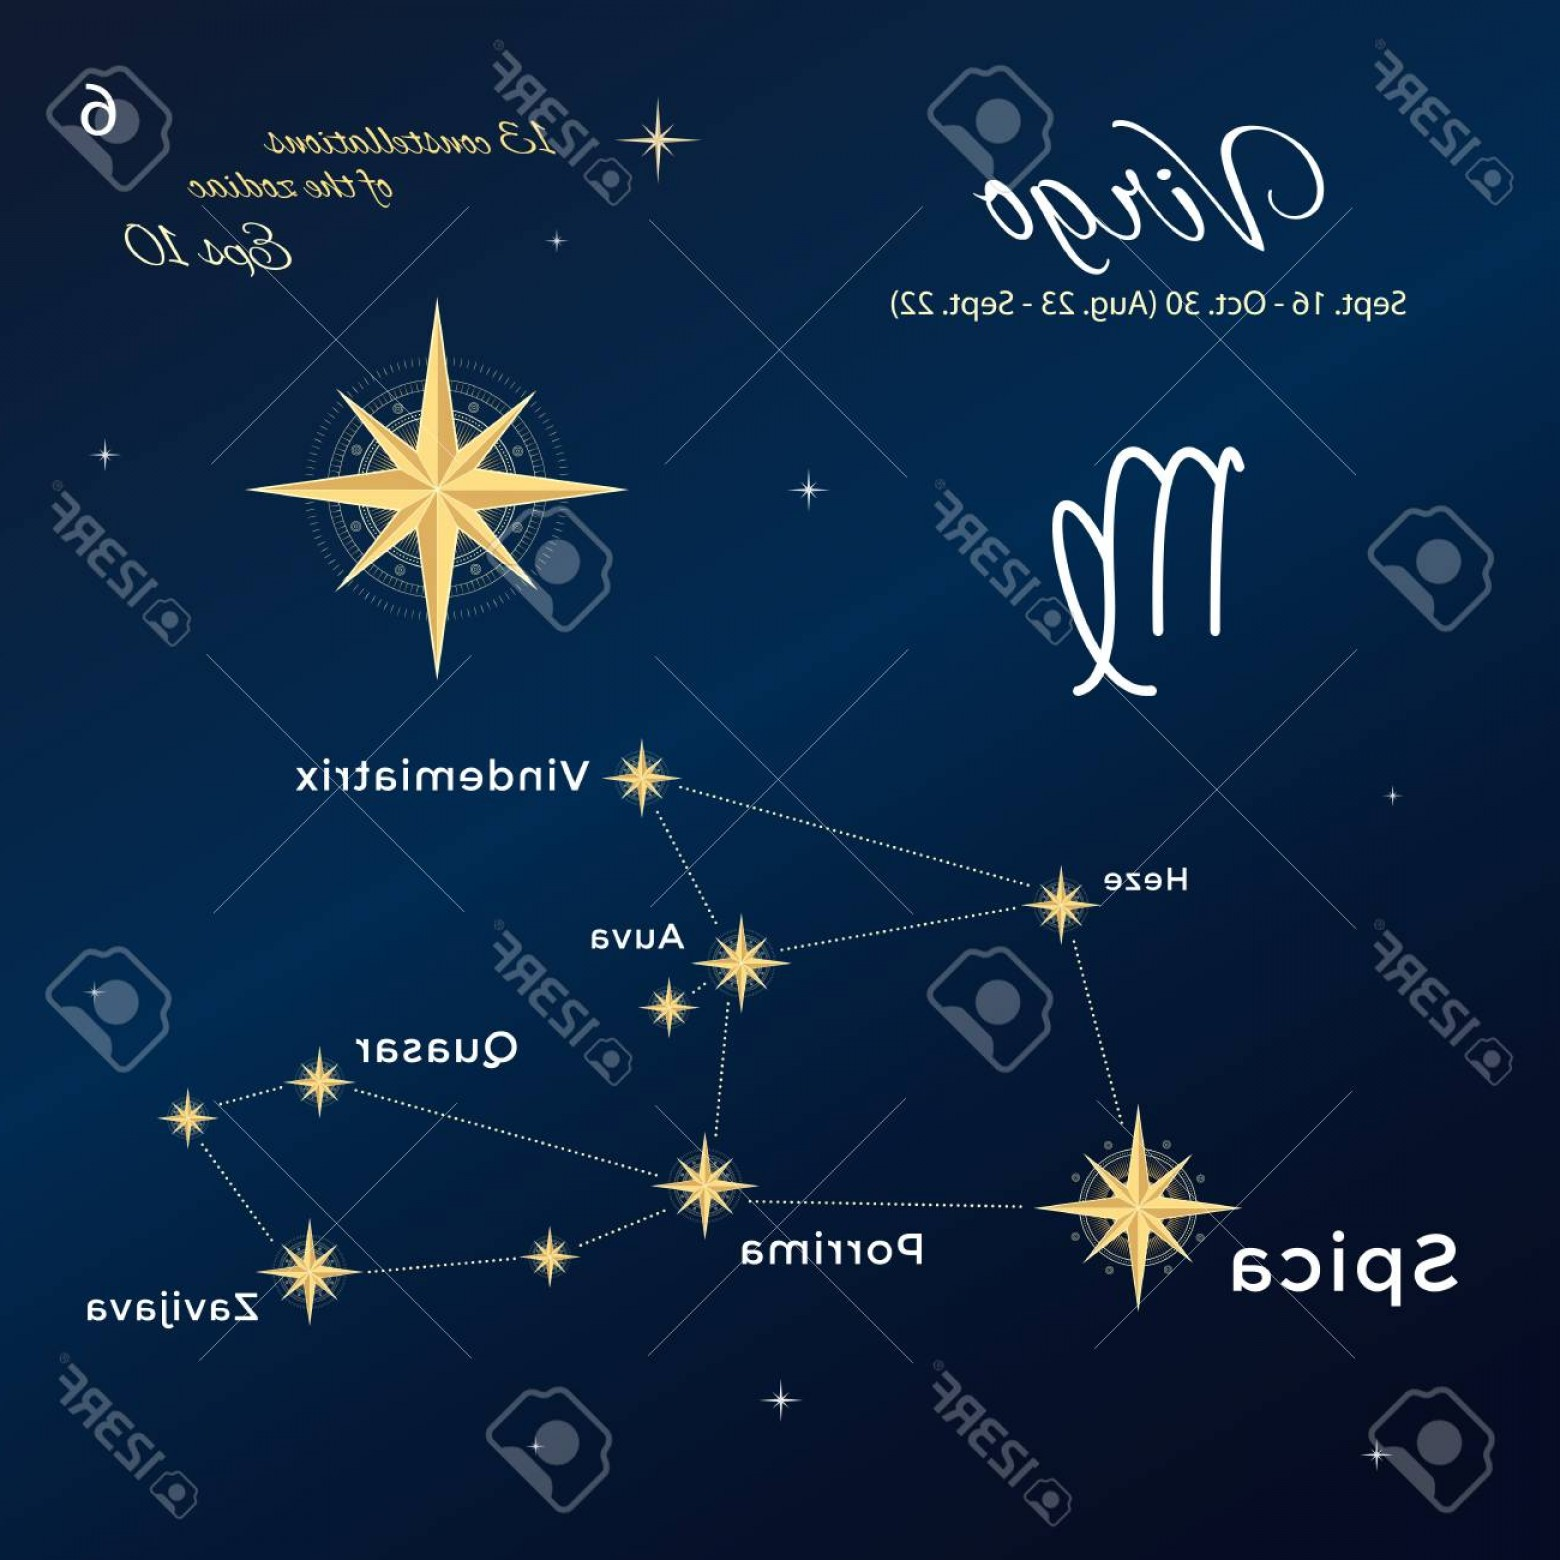 October Zodiac Constellation Vector: Photostock Vector Virgo High Detailed Vector Illustration Constellations Of The Zodiac With Titles And Proper Names